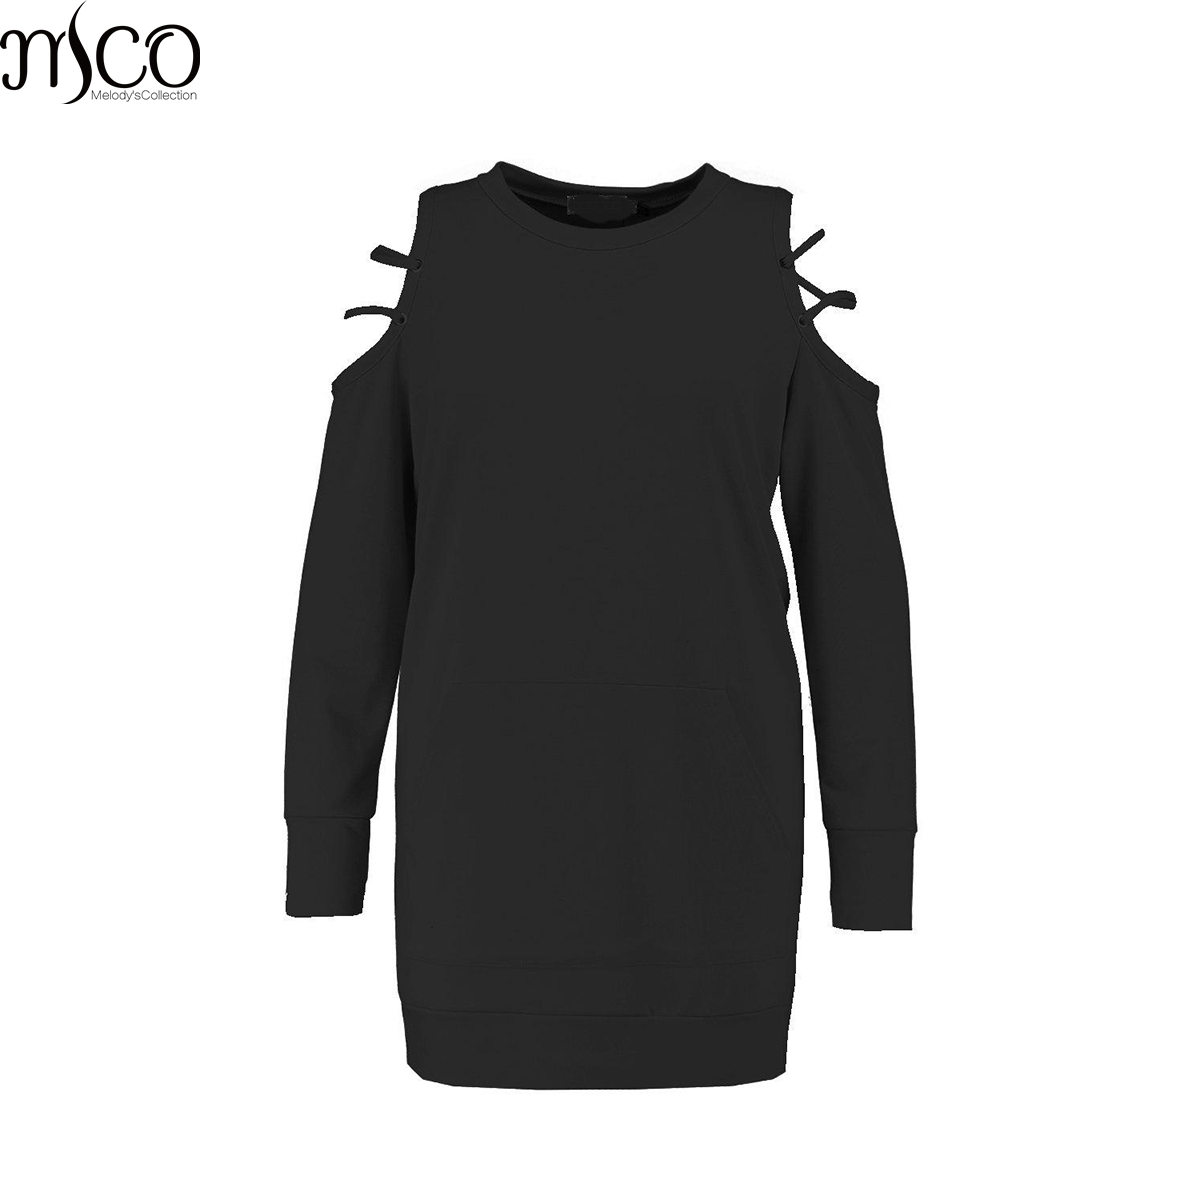 MCO Autumn <font><b>Sexy</b></font> Cold Caged Off Shoulder Plus Size Jumper <font><b>Dress</b></font> Oversized Black Tunic <font><b>Dress</b></font> Basic Big Size Women Clothing <font><b>6xl</b></font> 7xl image